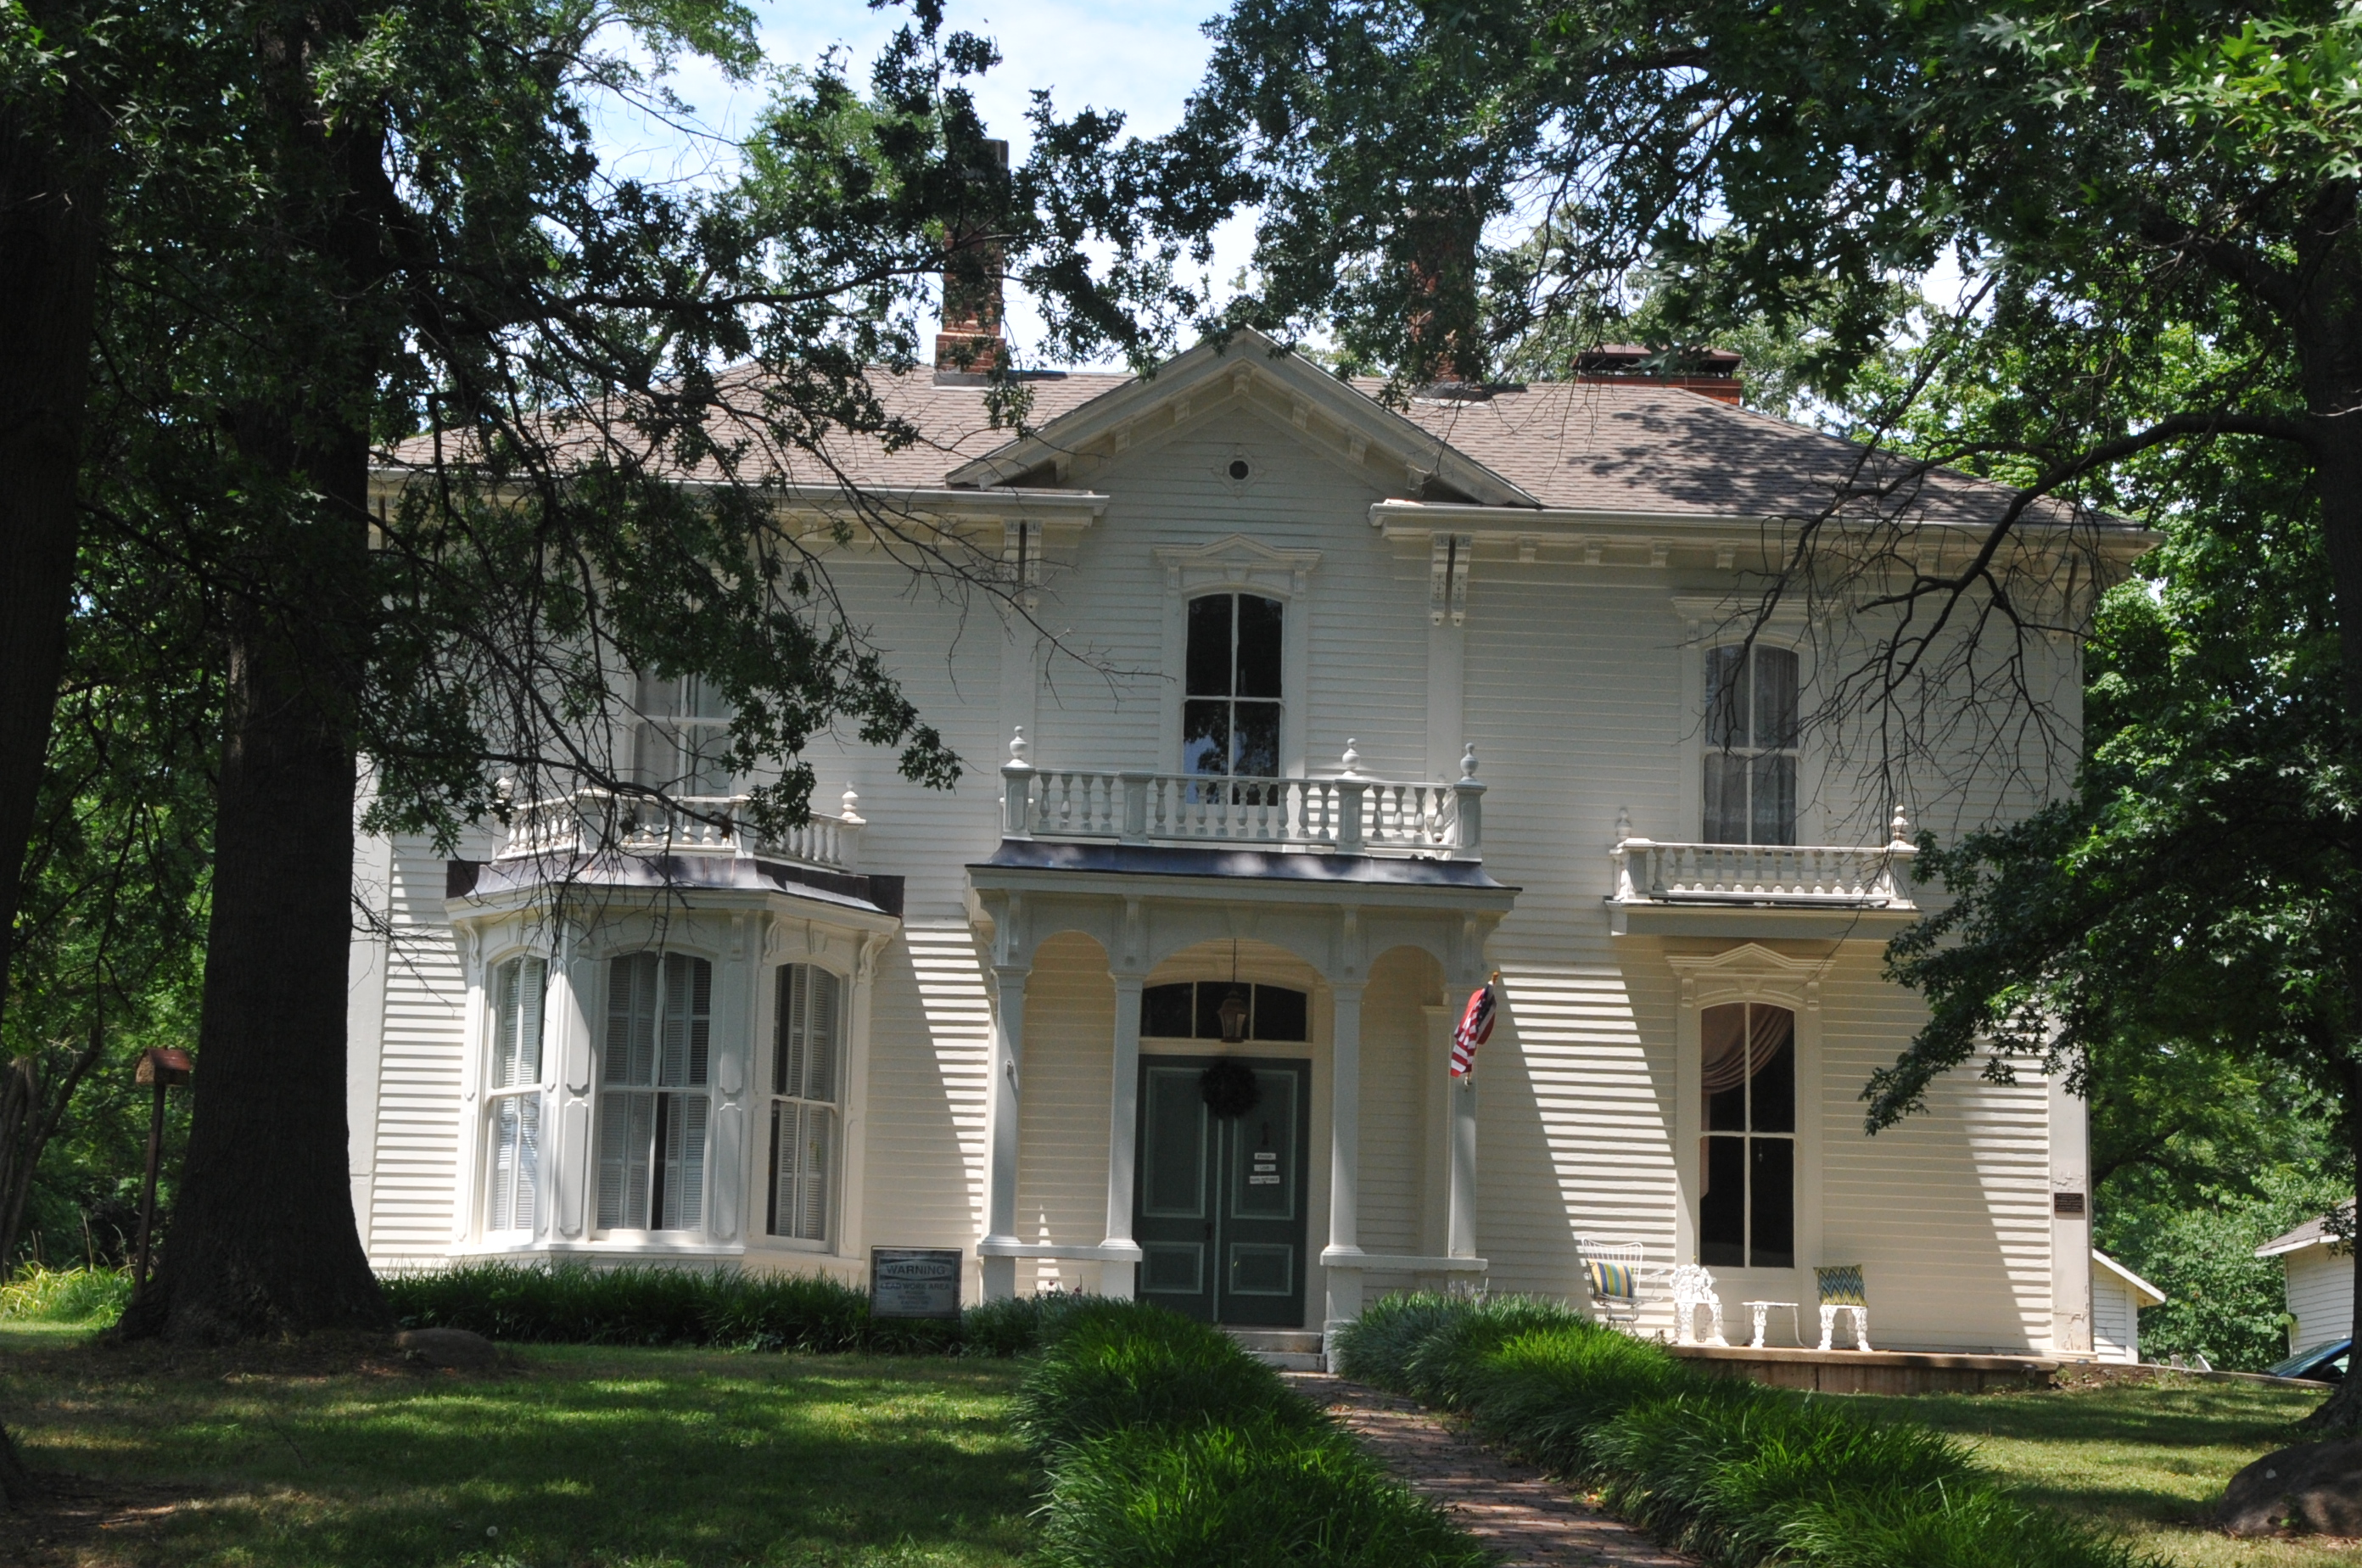 Creepy Houses in Missouri That Could Be Haunted